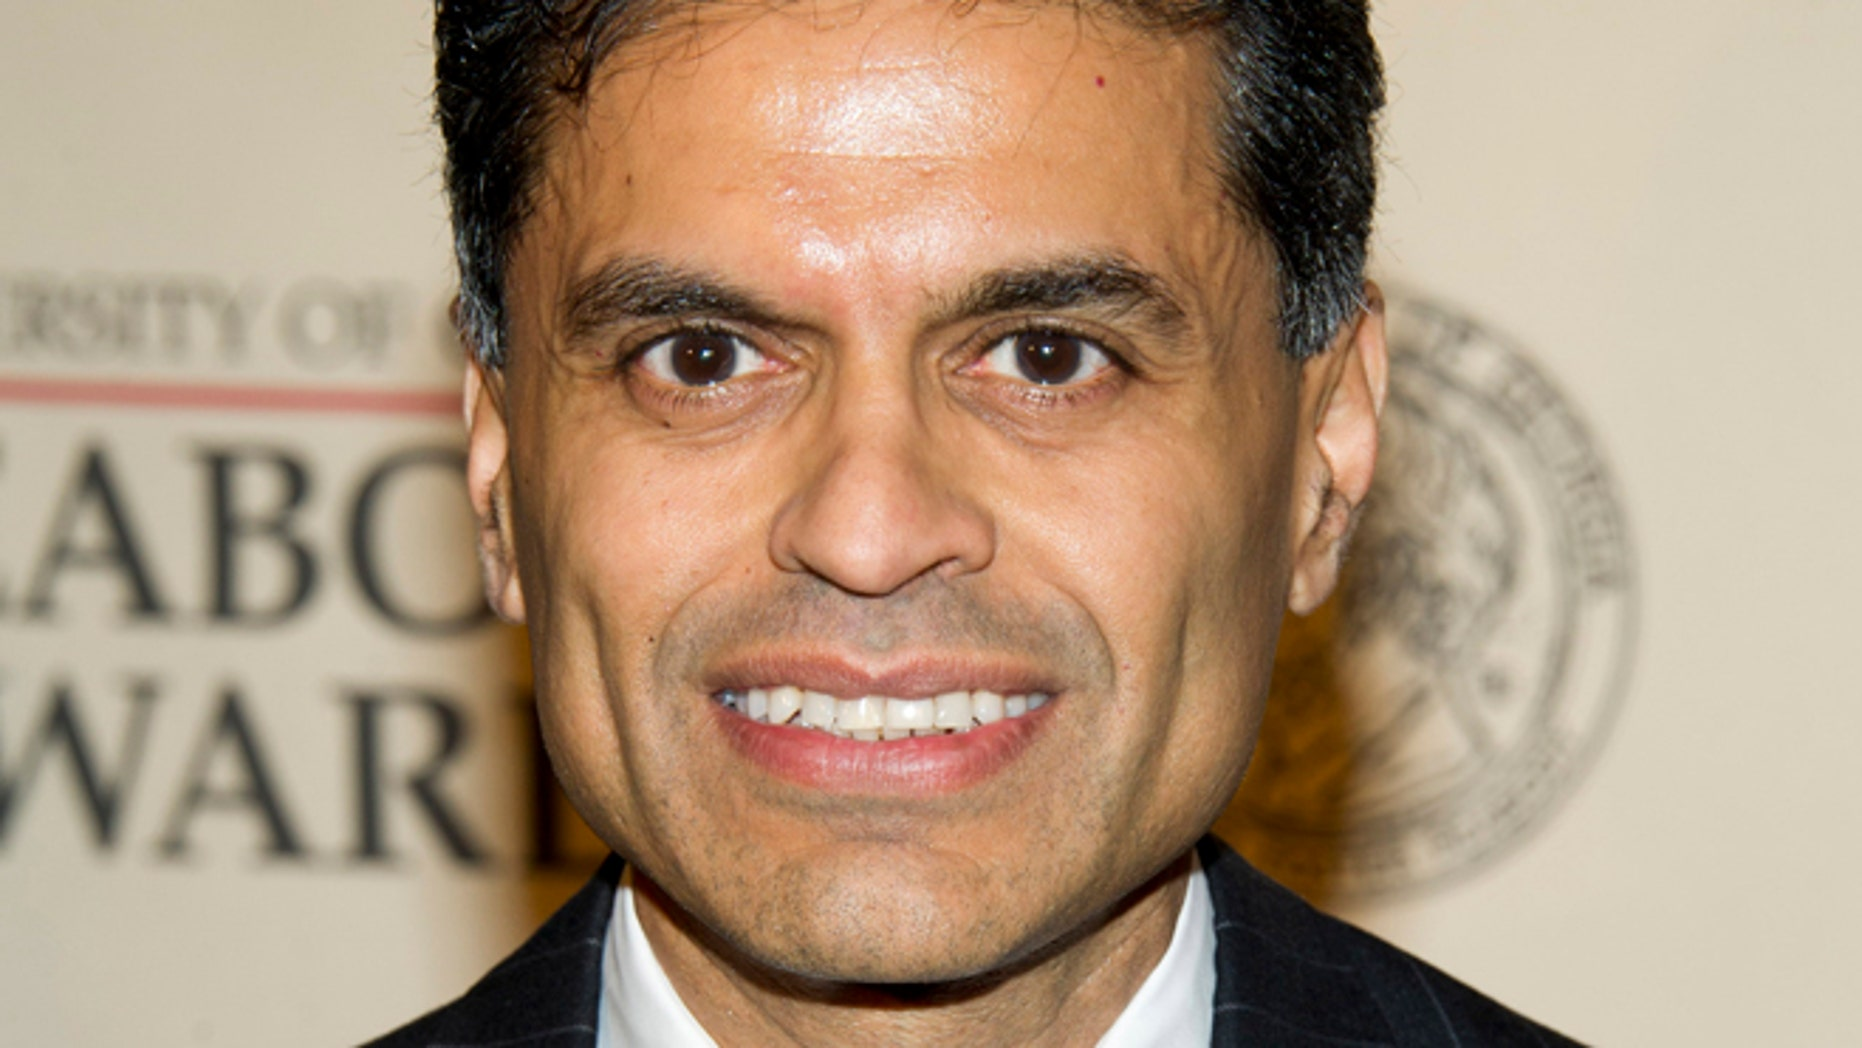 Fareed Zakaria, seen in this May 21, 2012, file photo, has been suspended by Time and CNN for plagiarism.